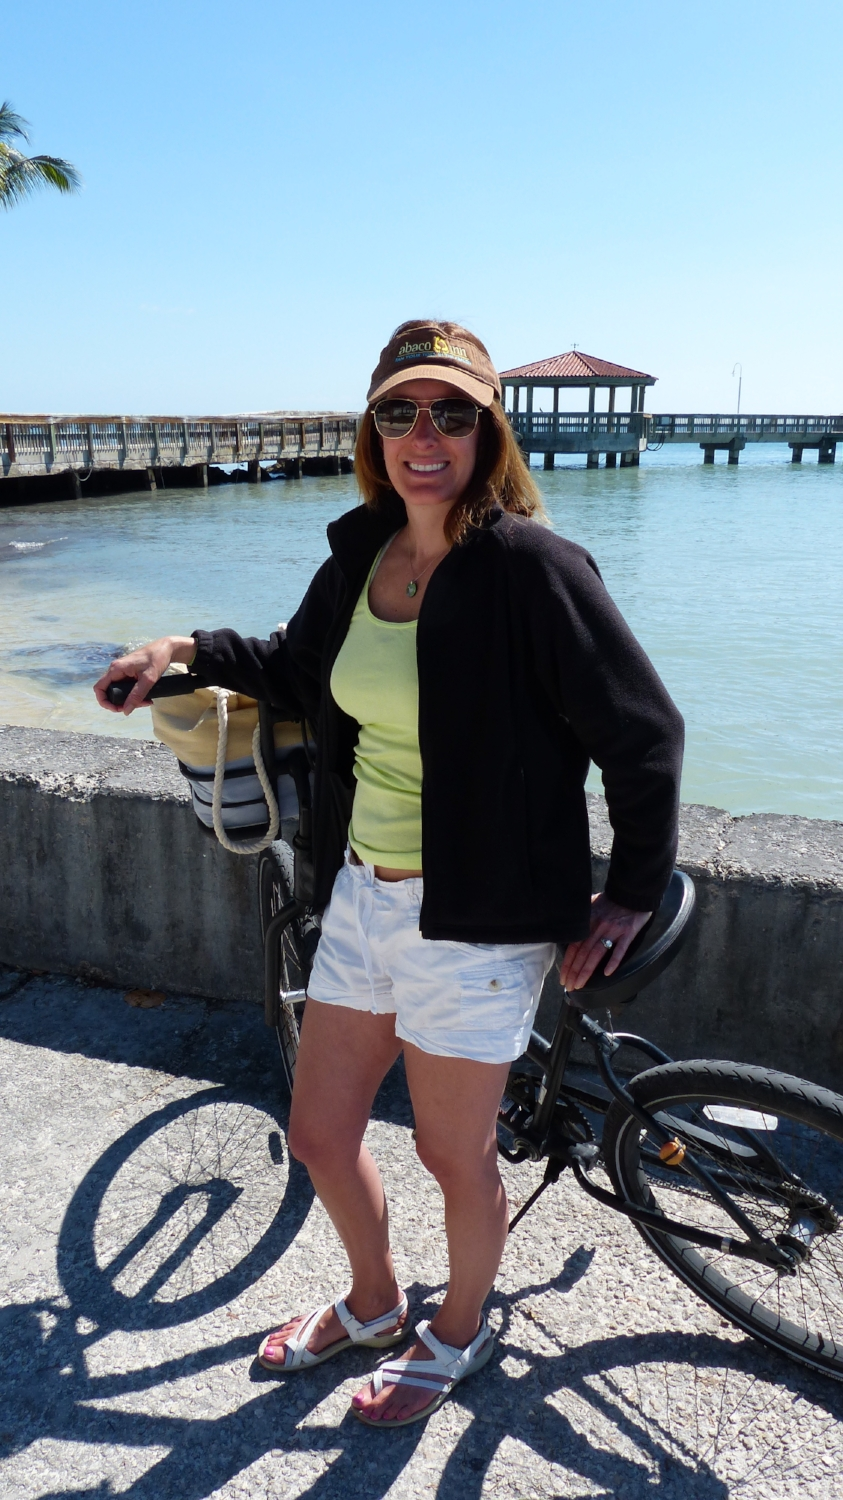 biking-key-west-fl.jpg